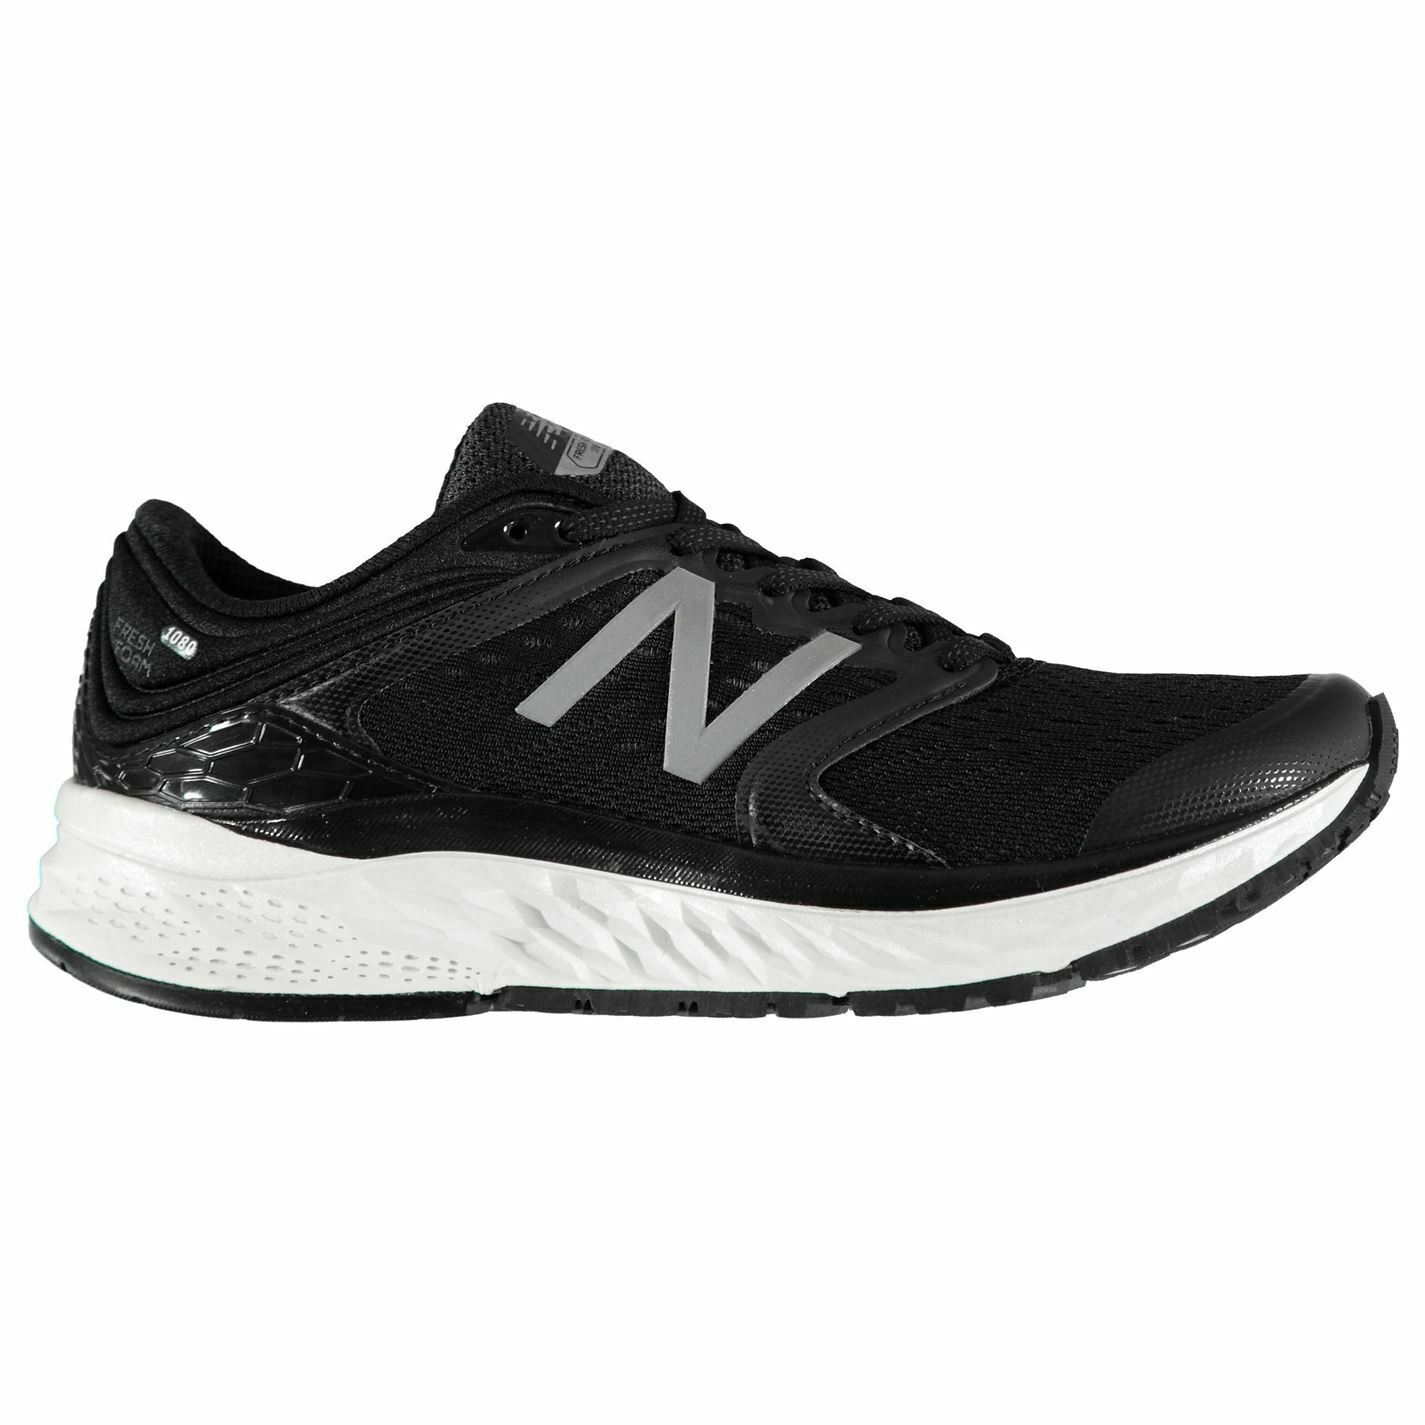 New Balance Womens 1080 v8 Running shoes Road Lace Up Breathable Padded Ankle